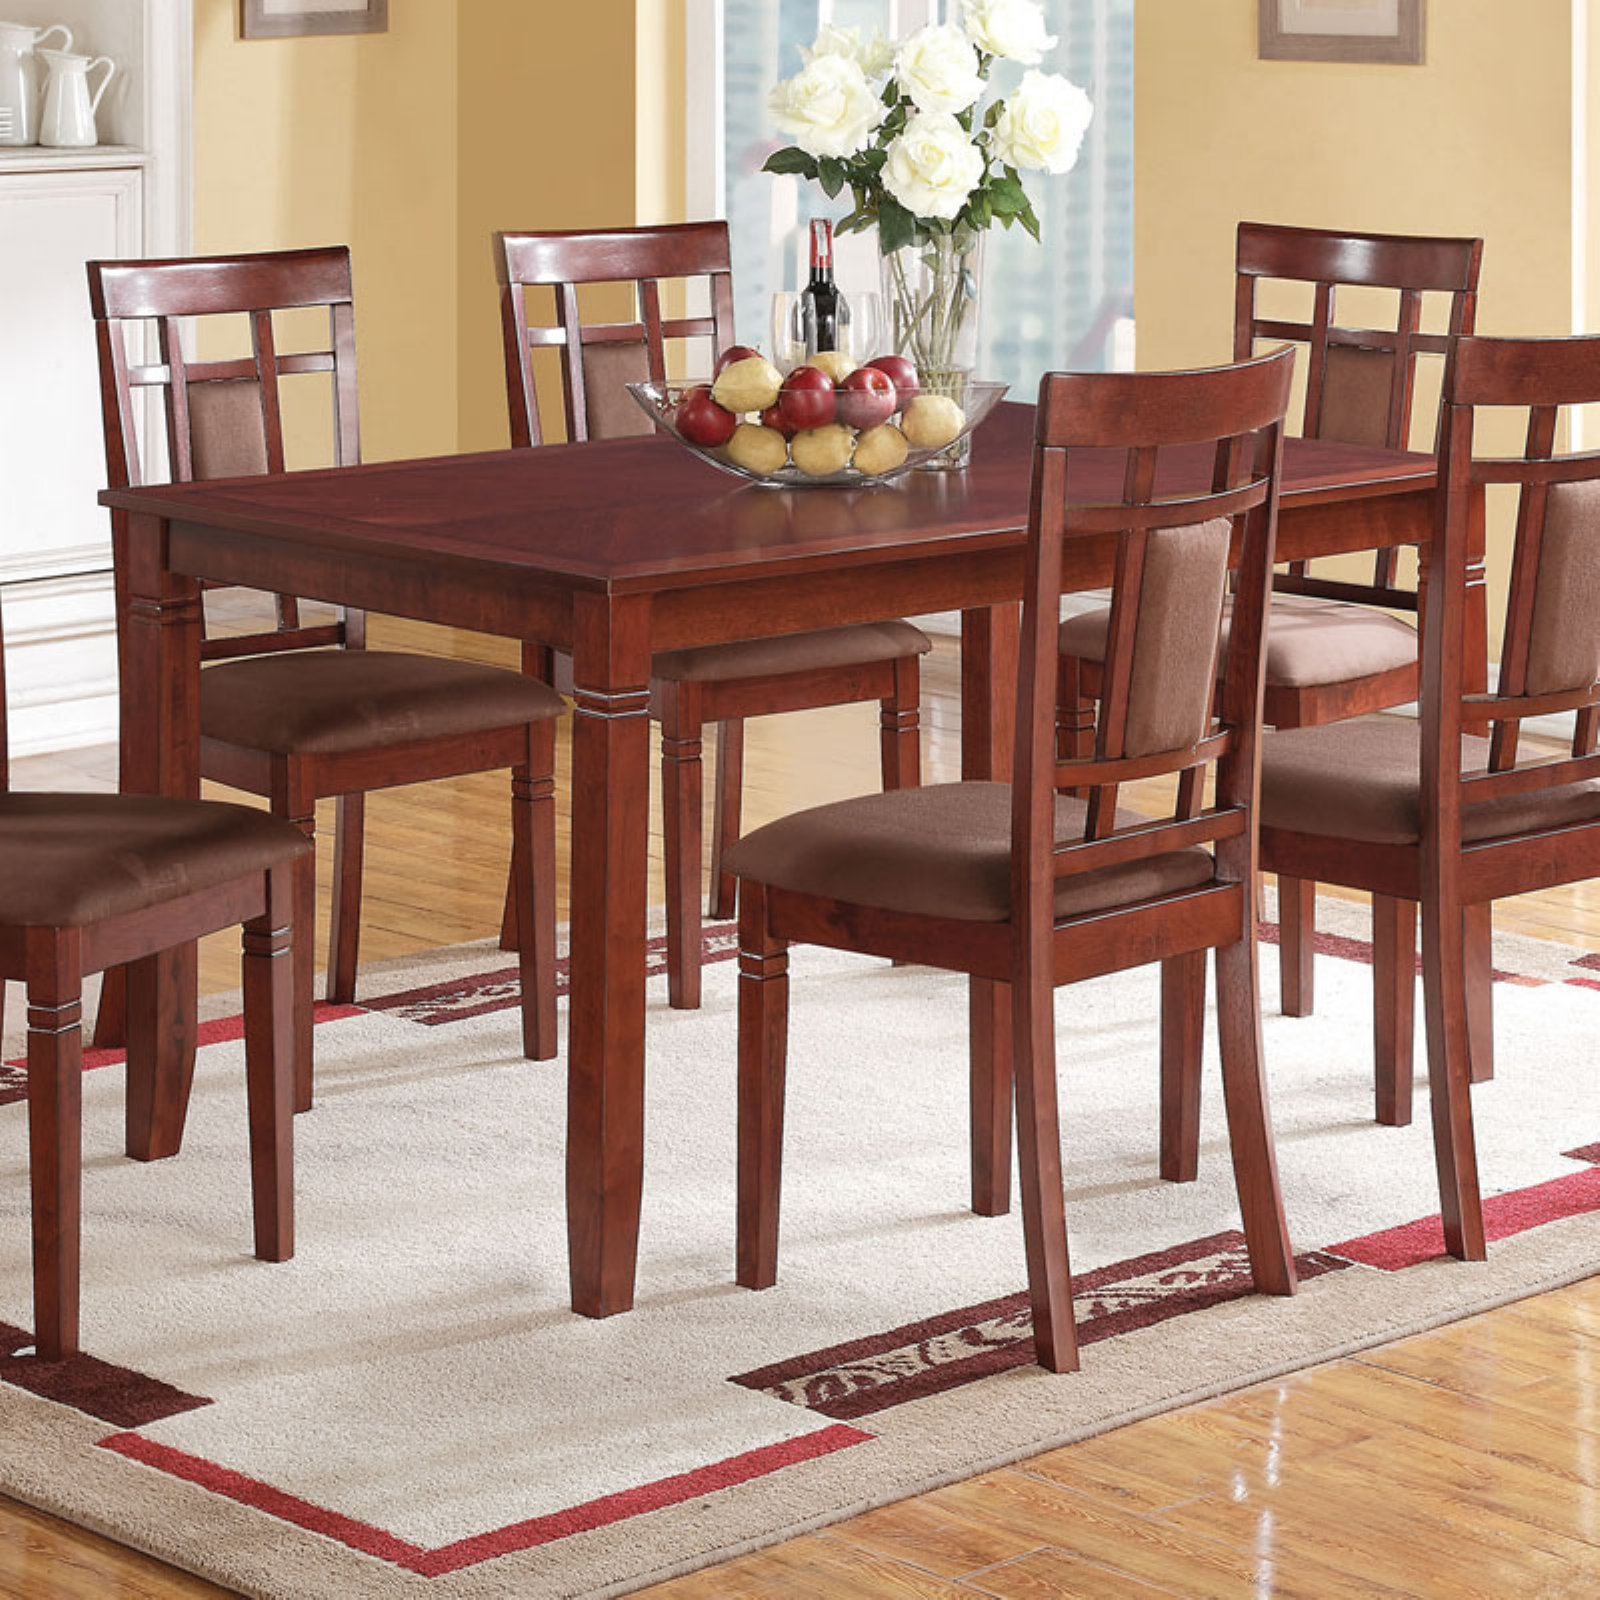 ACME Sonata Dining Table, Cherry by Acme Furniture